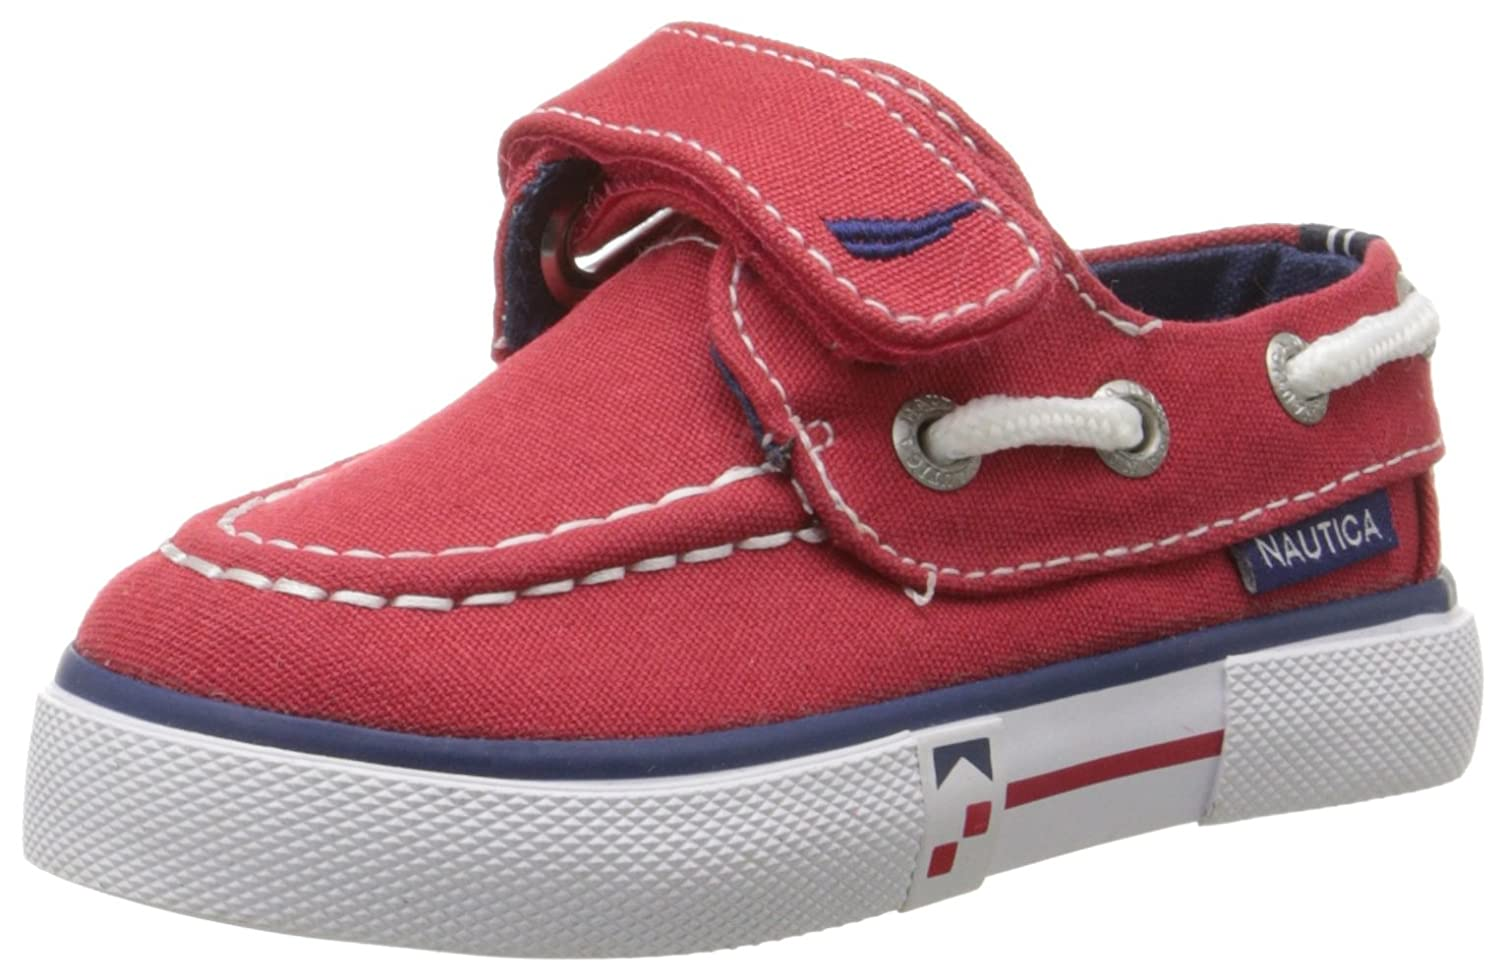 Nautica Little River 2 Boat Shoe (Toddler/Little Kid) Little River 2 Boat Shoe - K